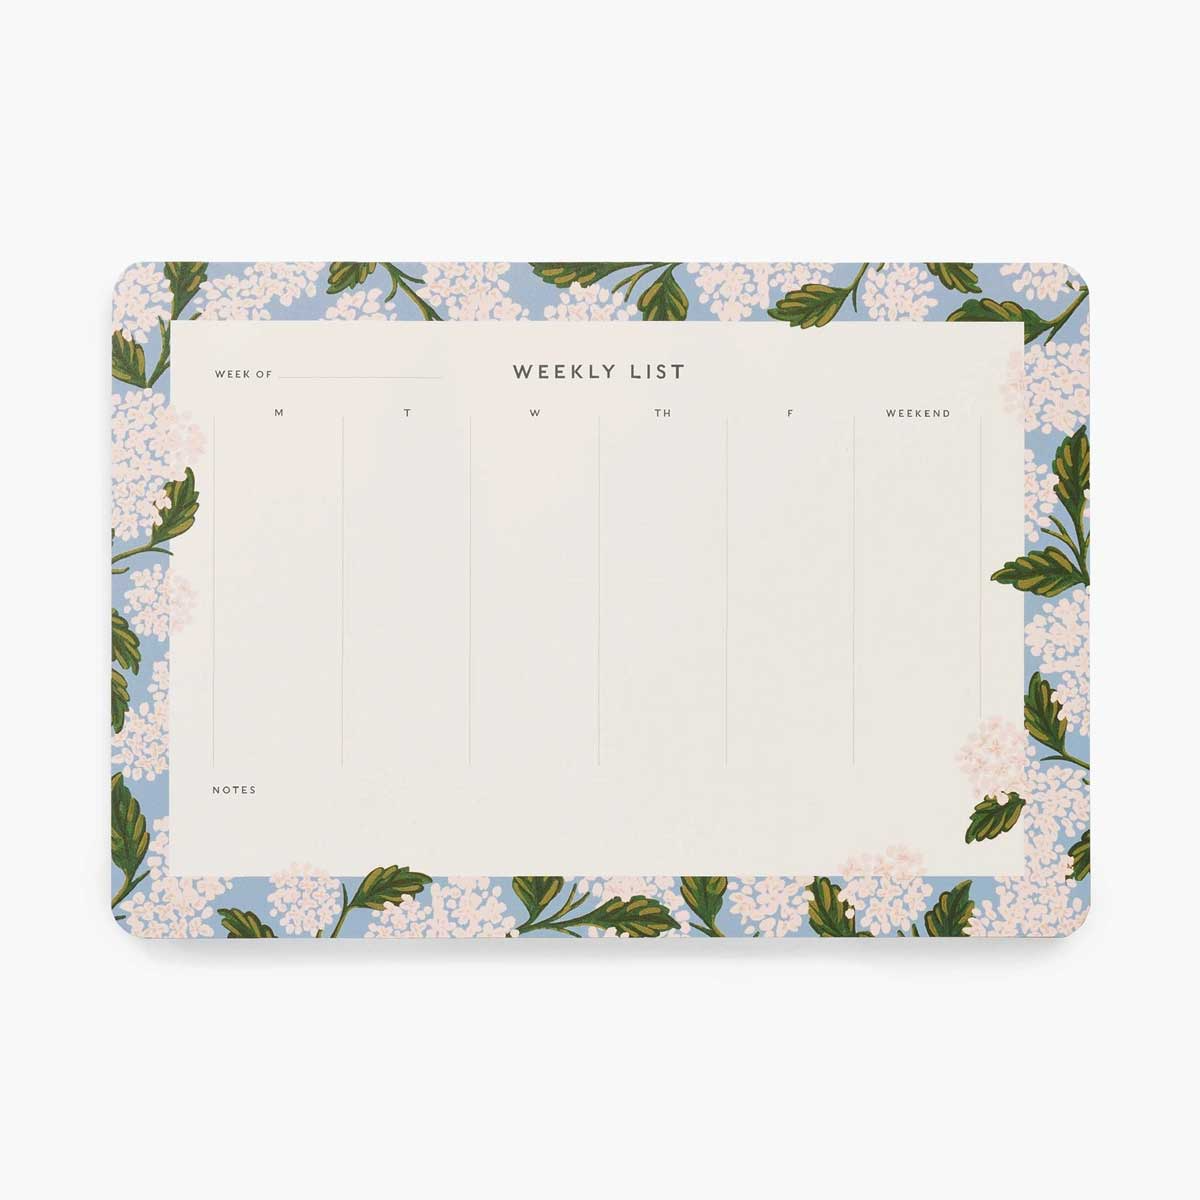 Planificador Semanal Hydrangea Rifle Paper Co. |Likely.es